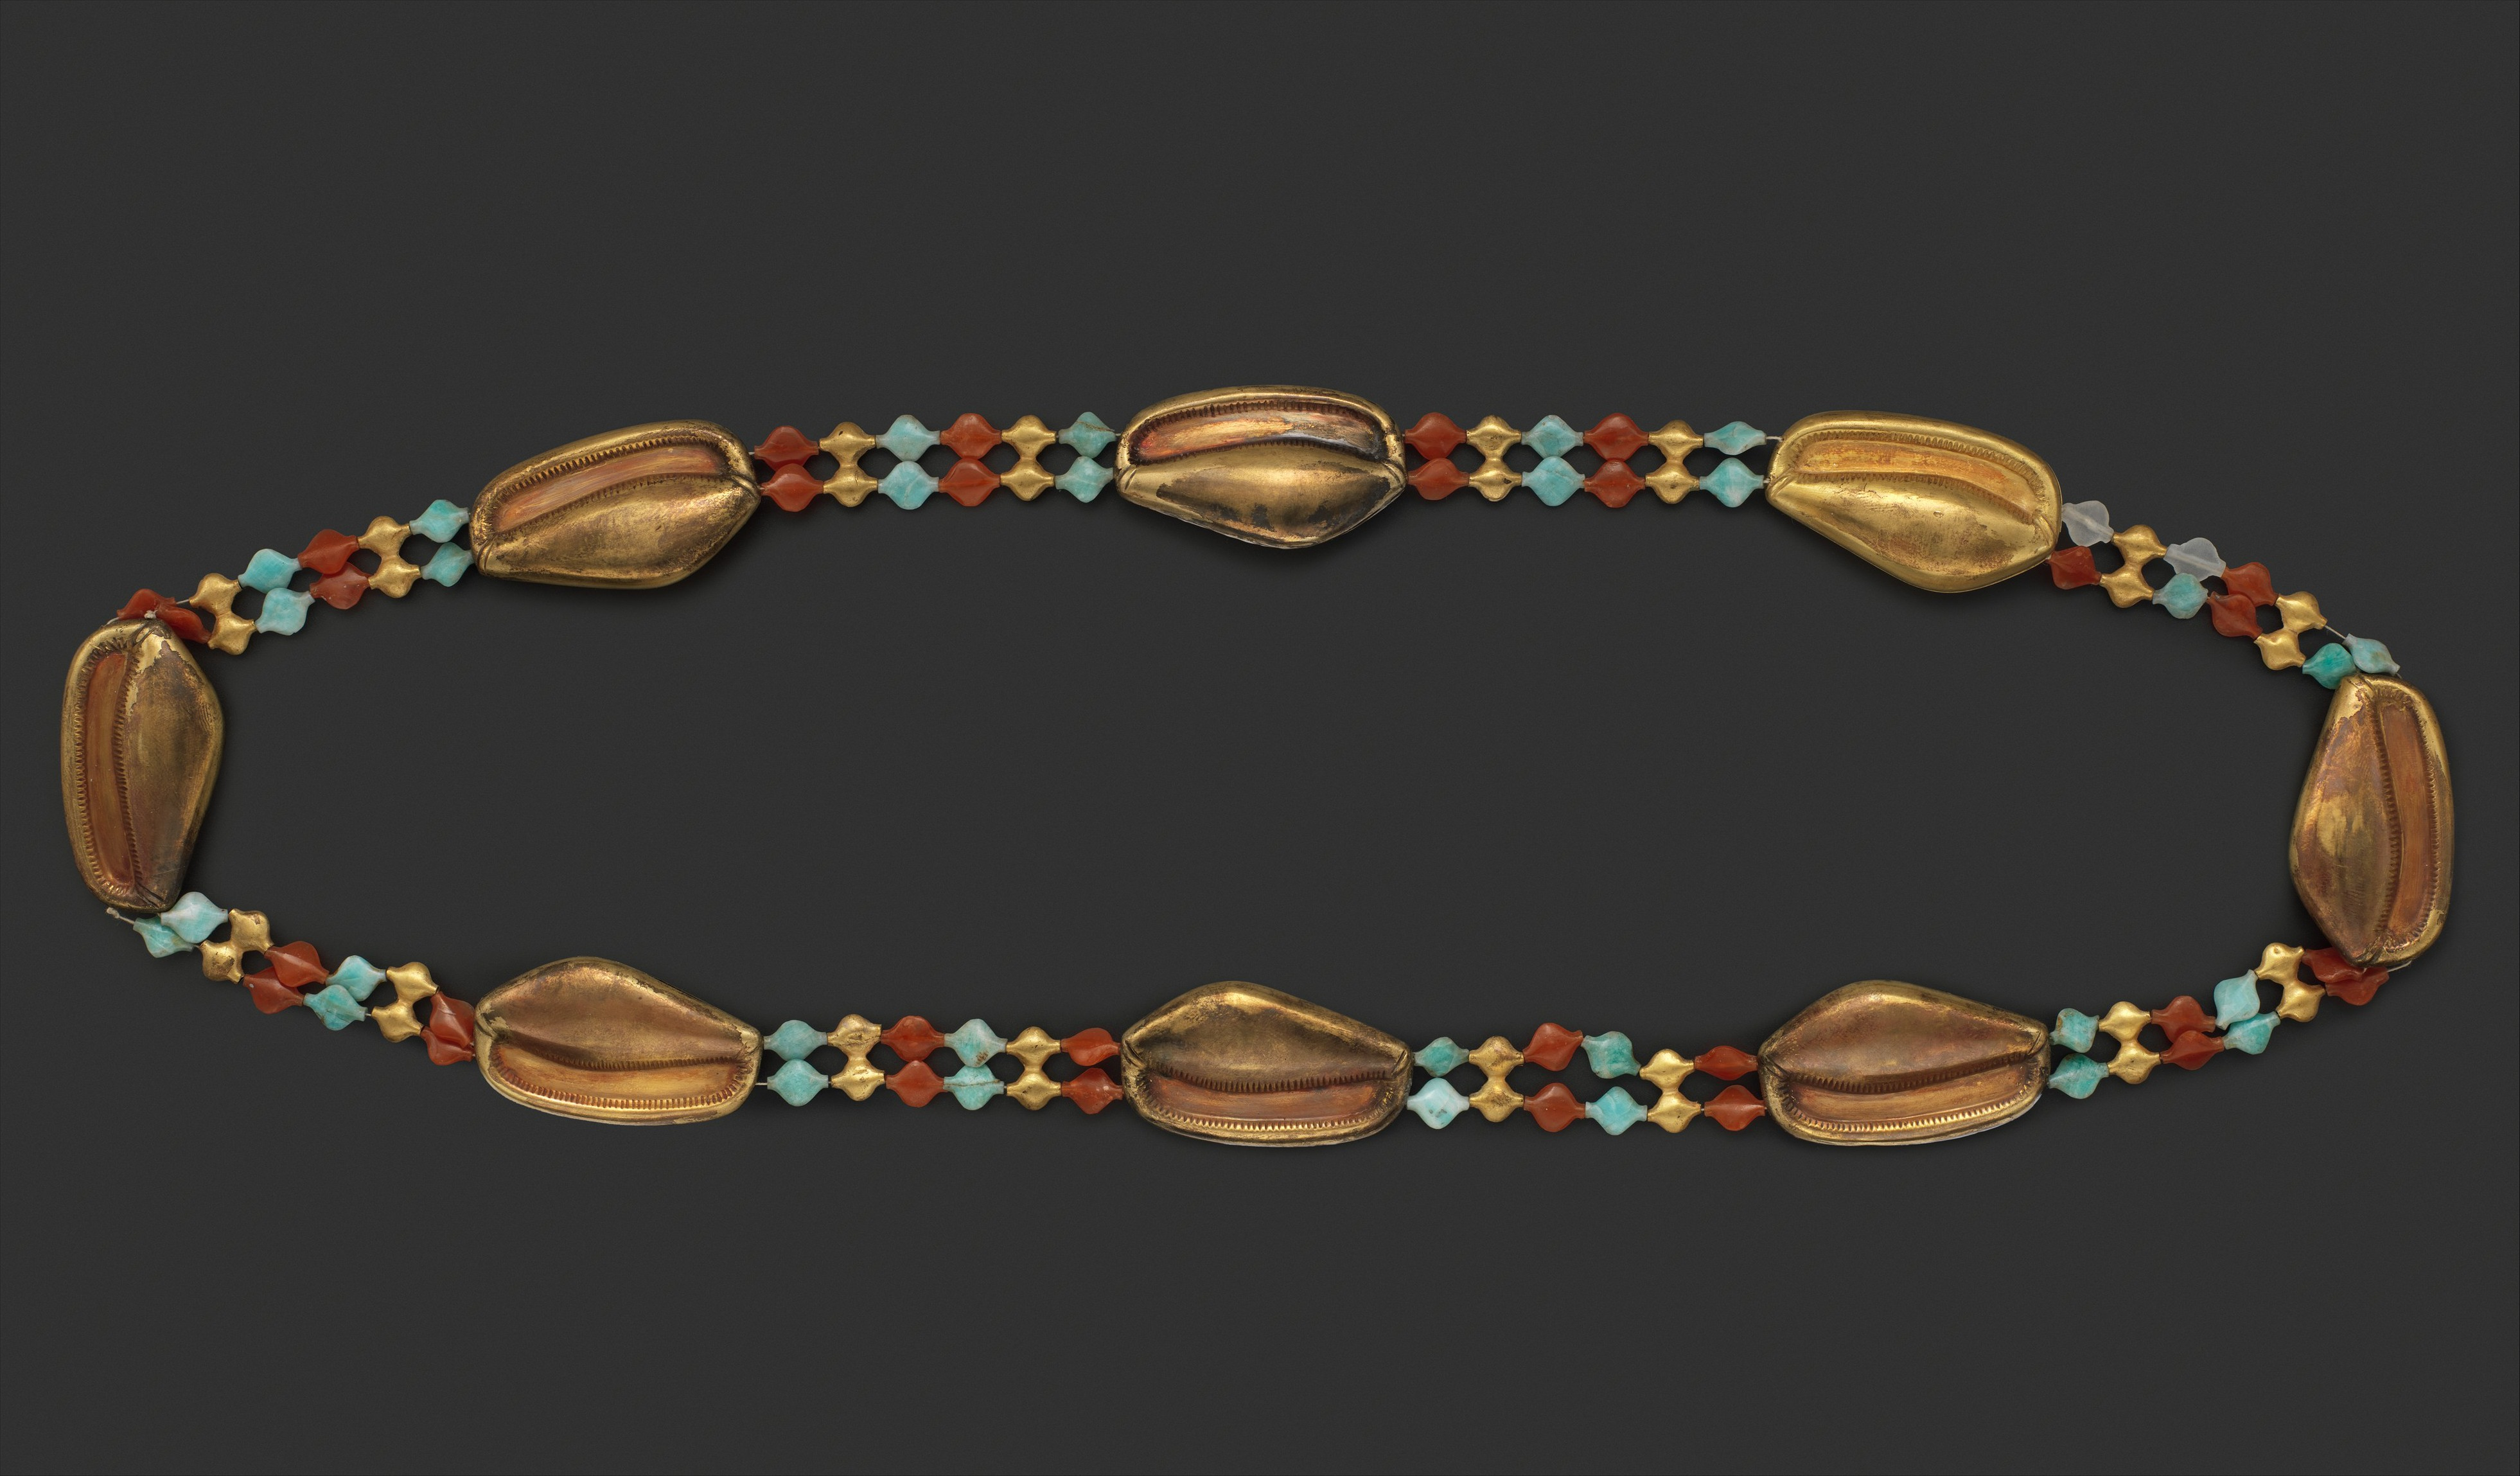 Egyptian Jewelry: A Window into Ancient Culture] | American Research